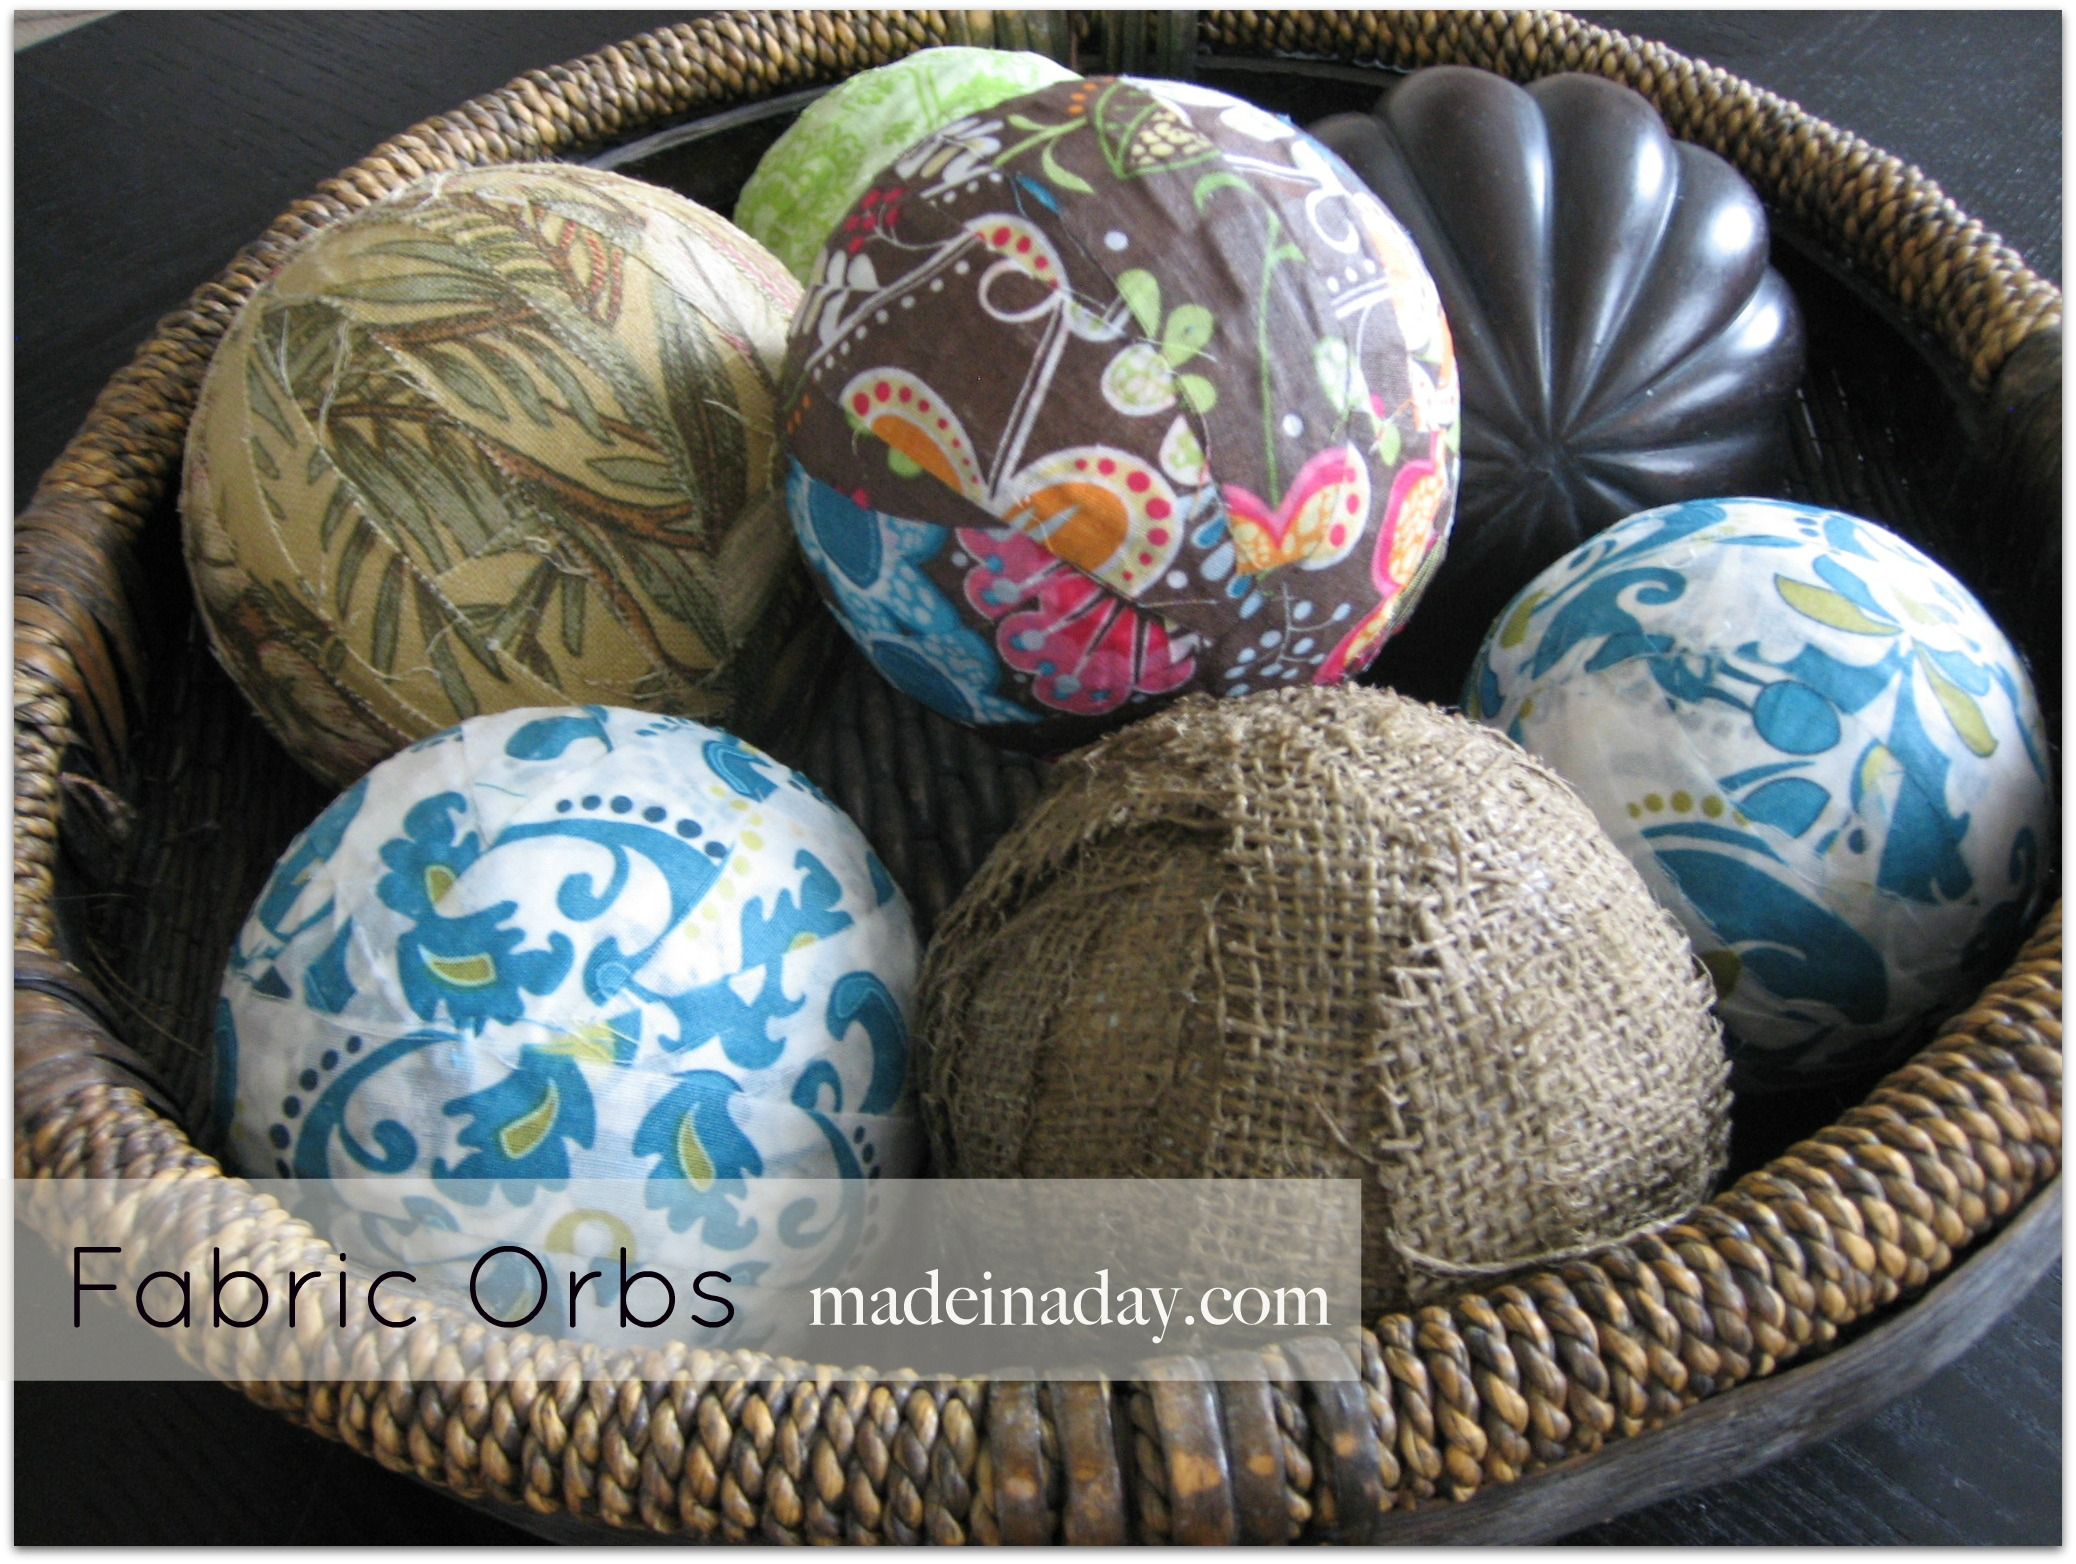 inspiring decorative orbs with floral patter and rattan vessel for charming table accessories ideas